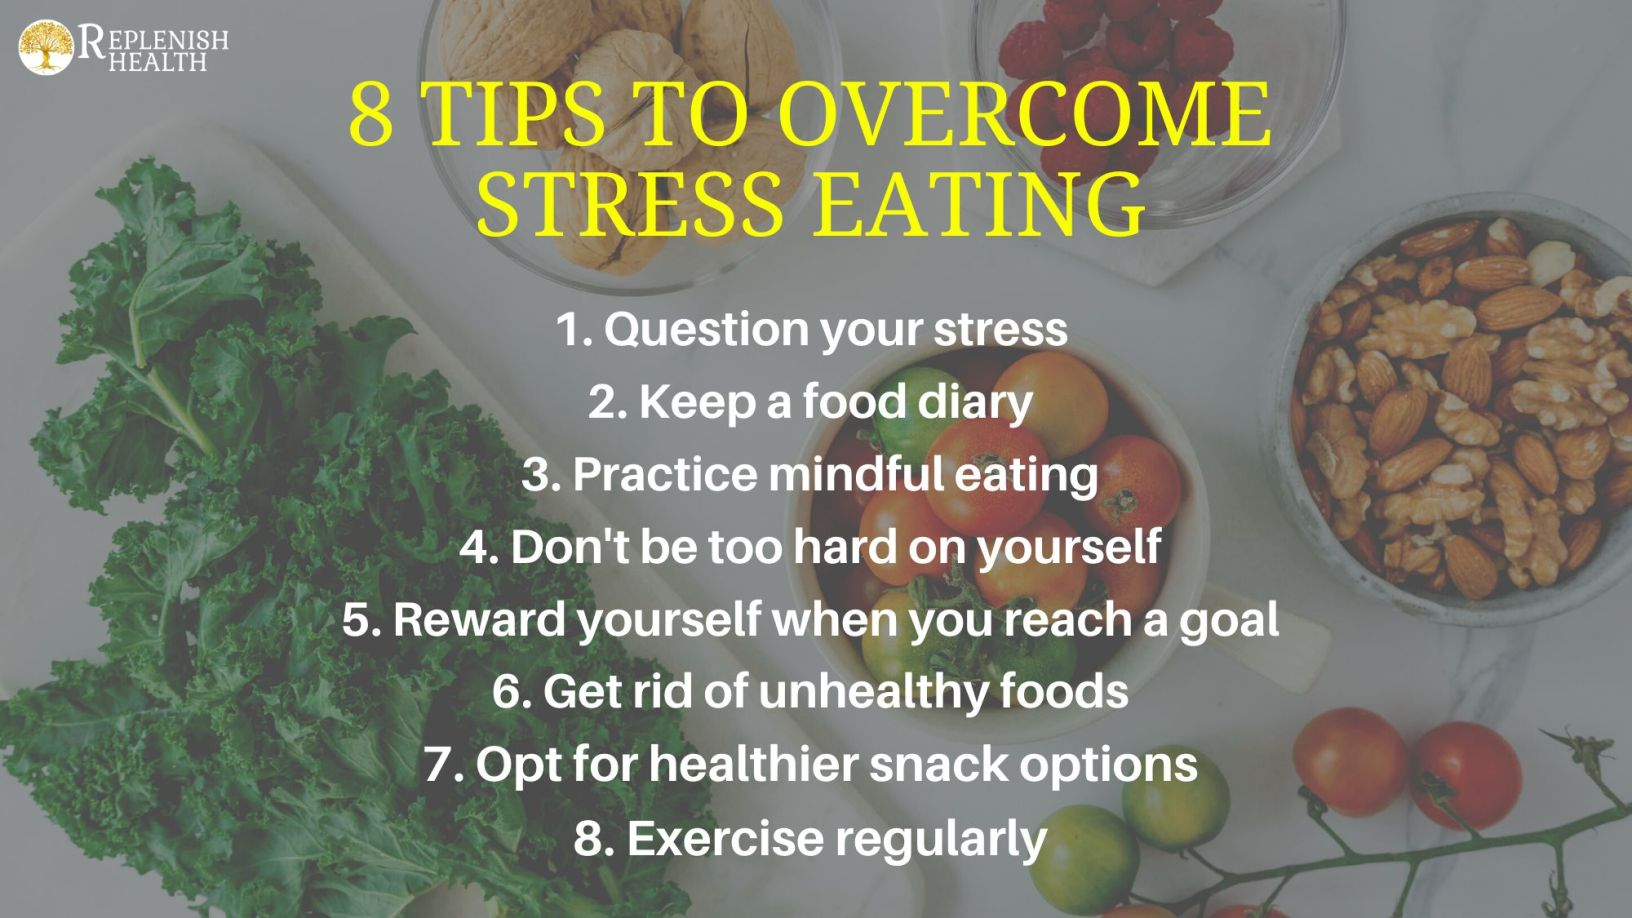 An image of 8 Tips To Overcome Stress Eating